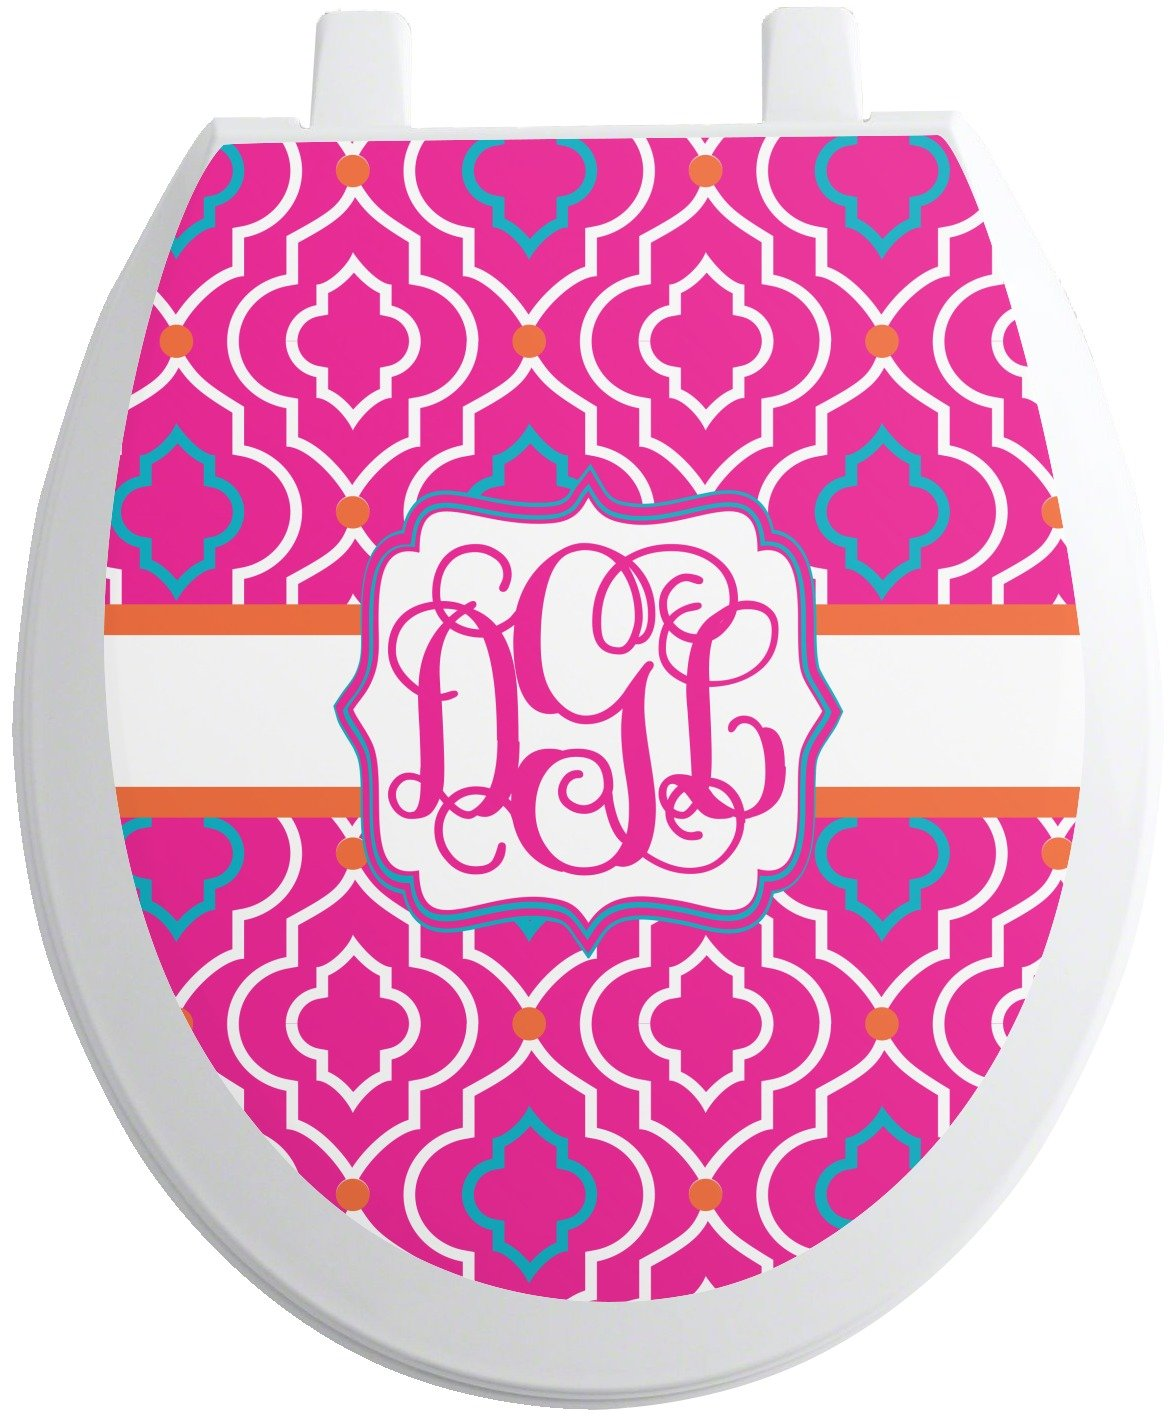 Colorful Trellis Toilet Seat Decal - Round (Personalized) 60%OFF